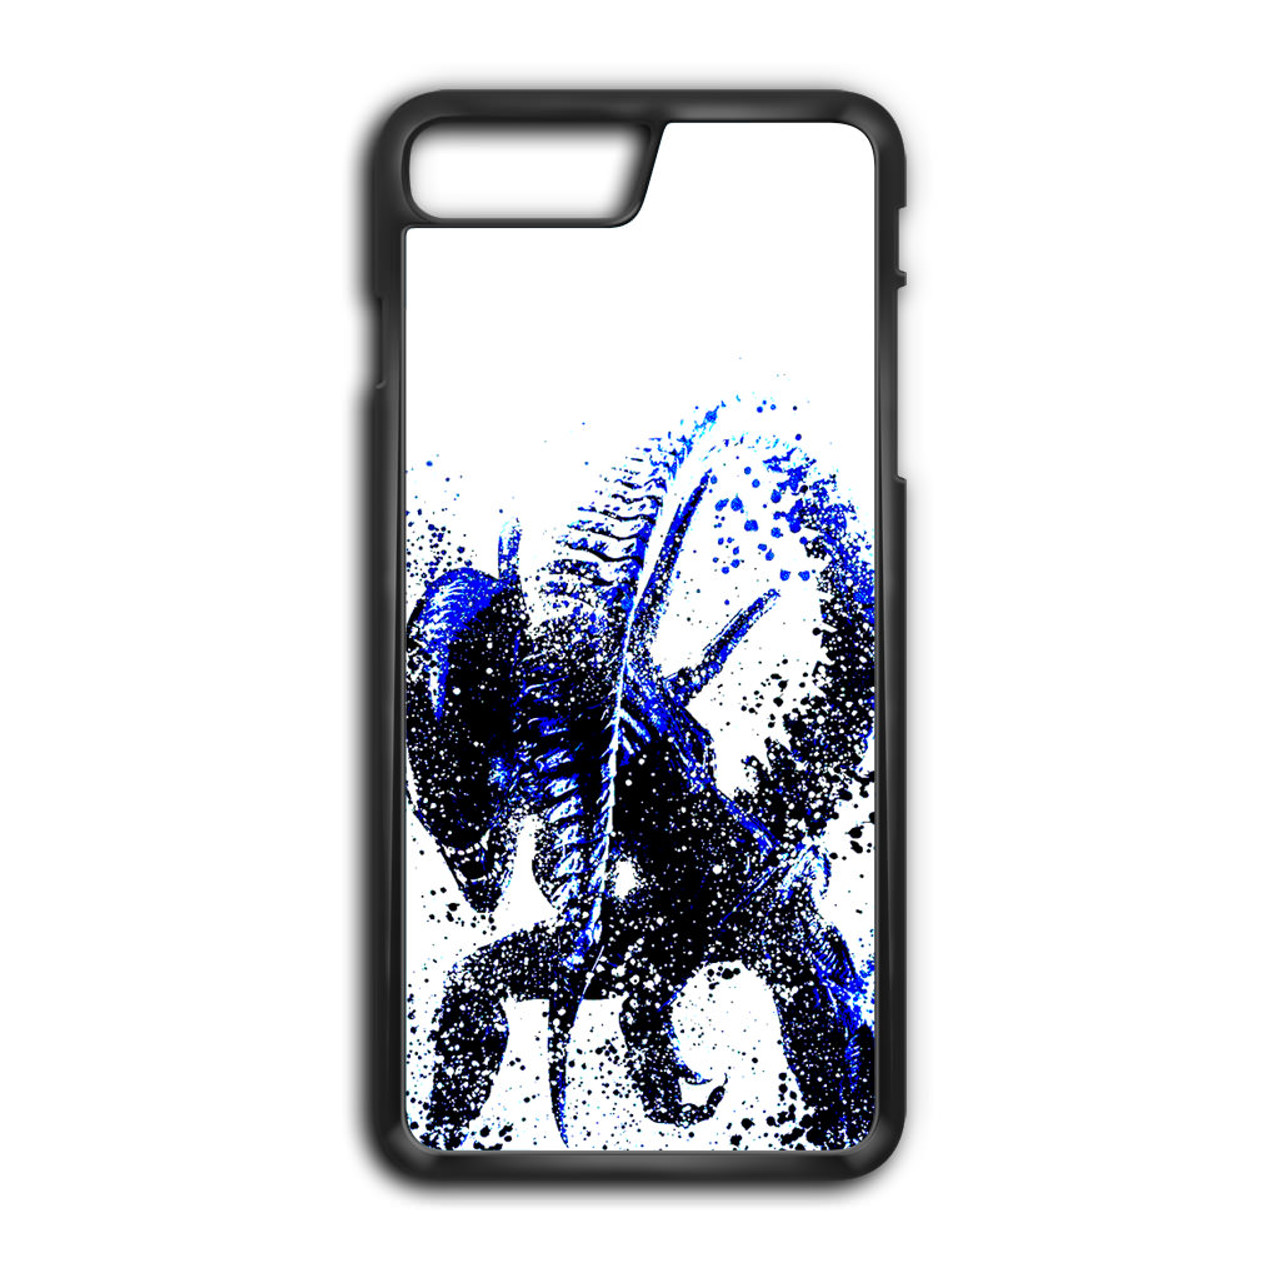 alien iphone 8 case